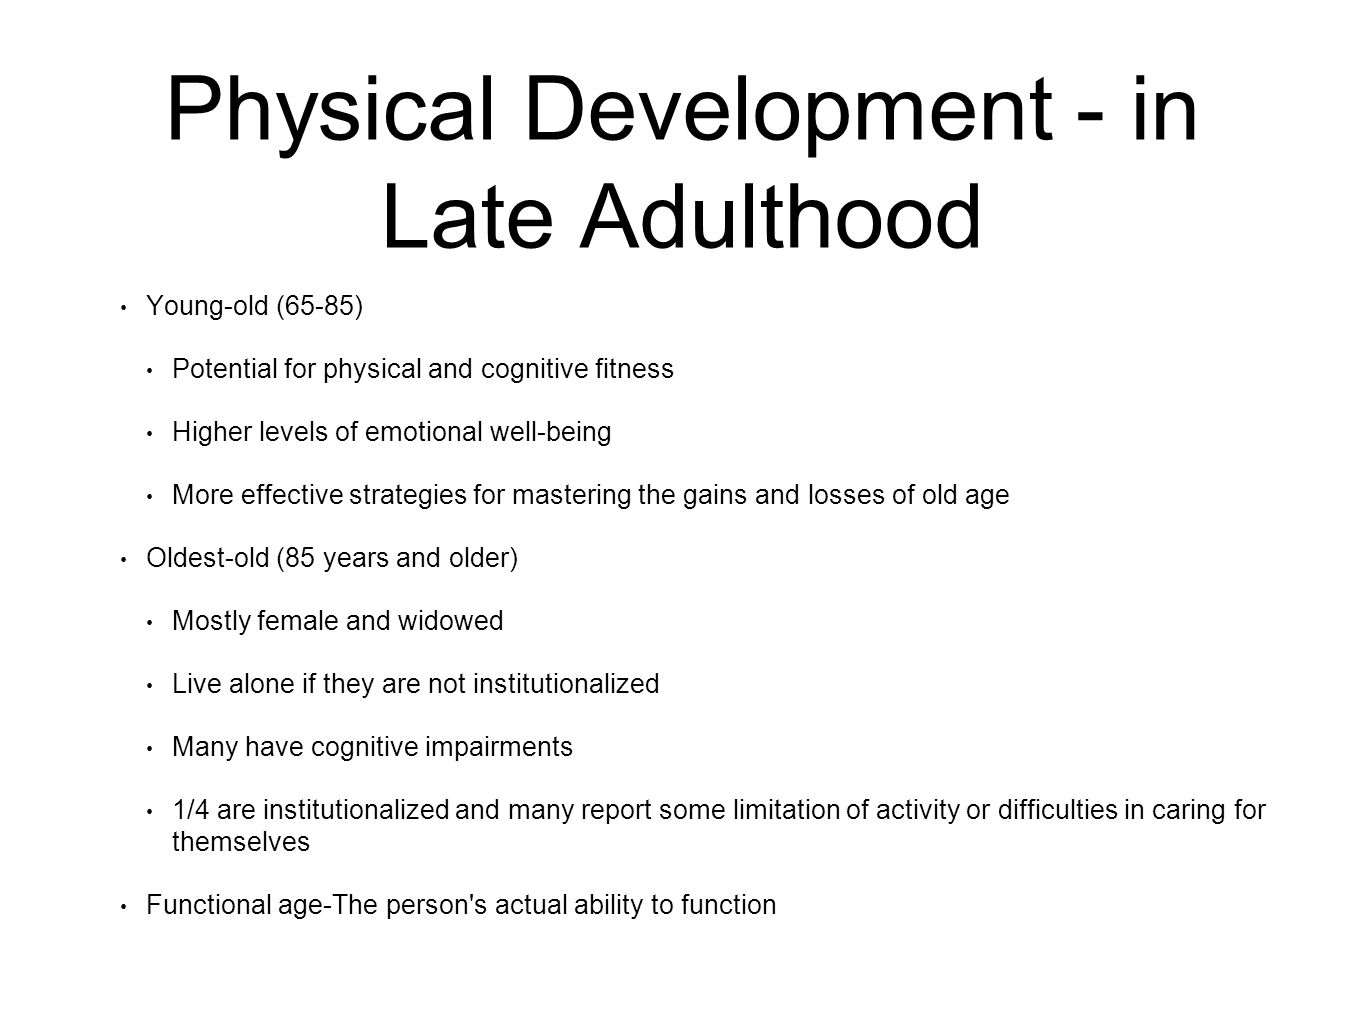 cognitive development in late adulthood